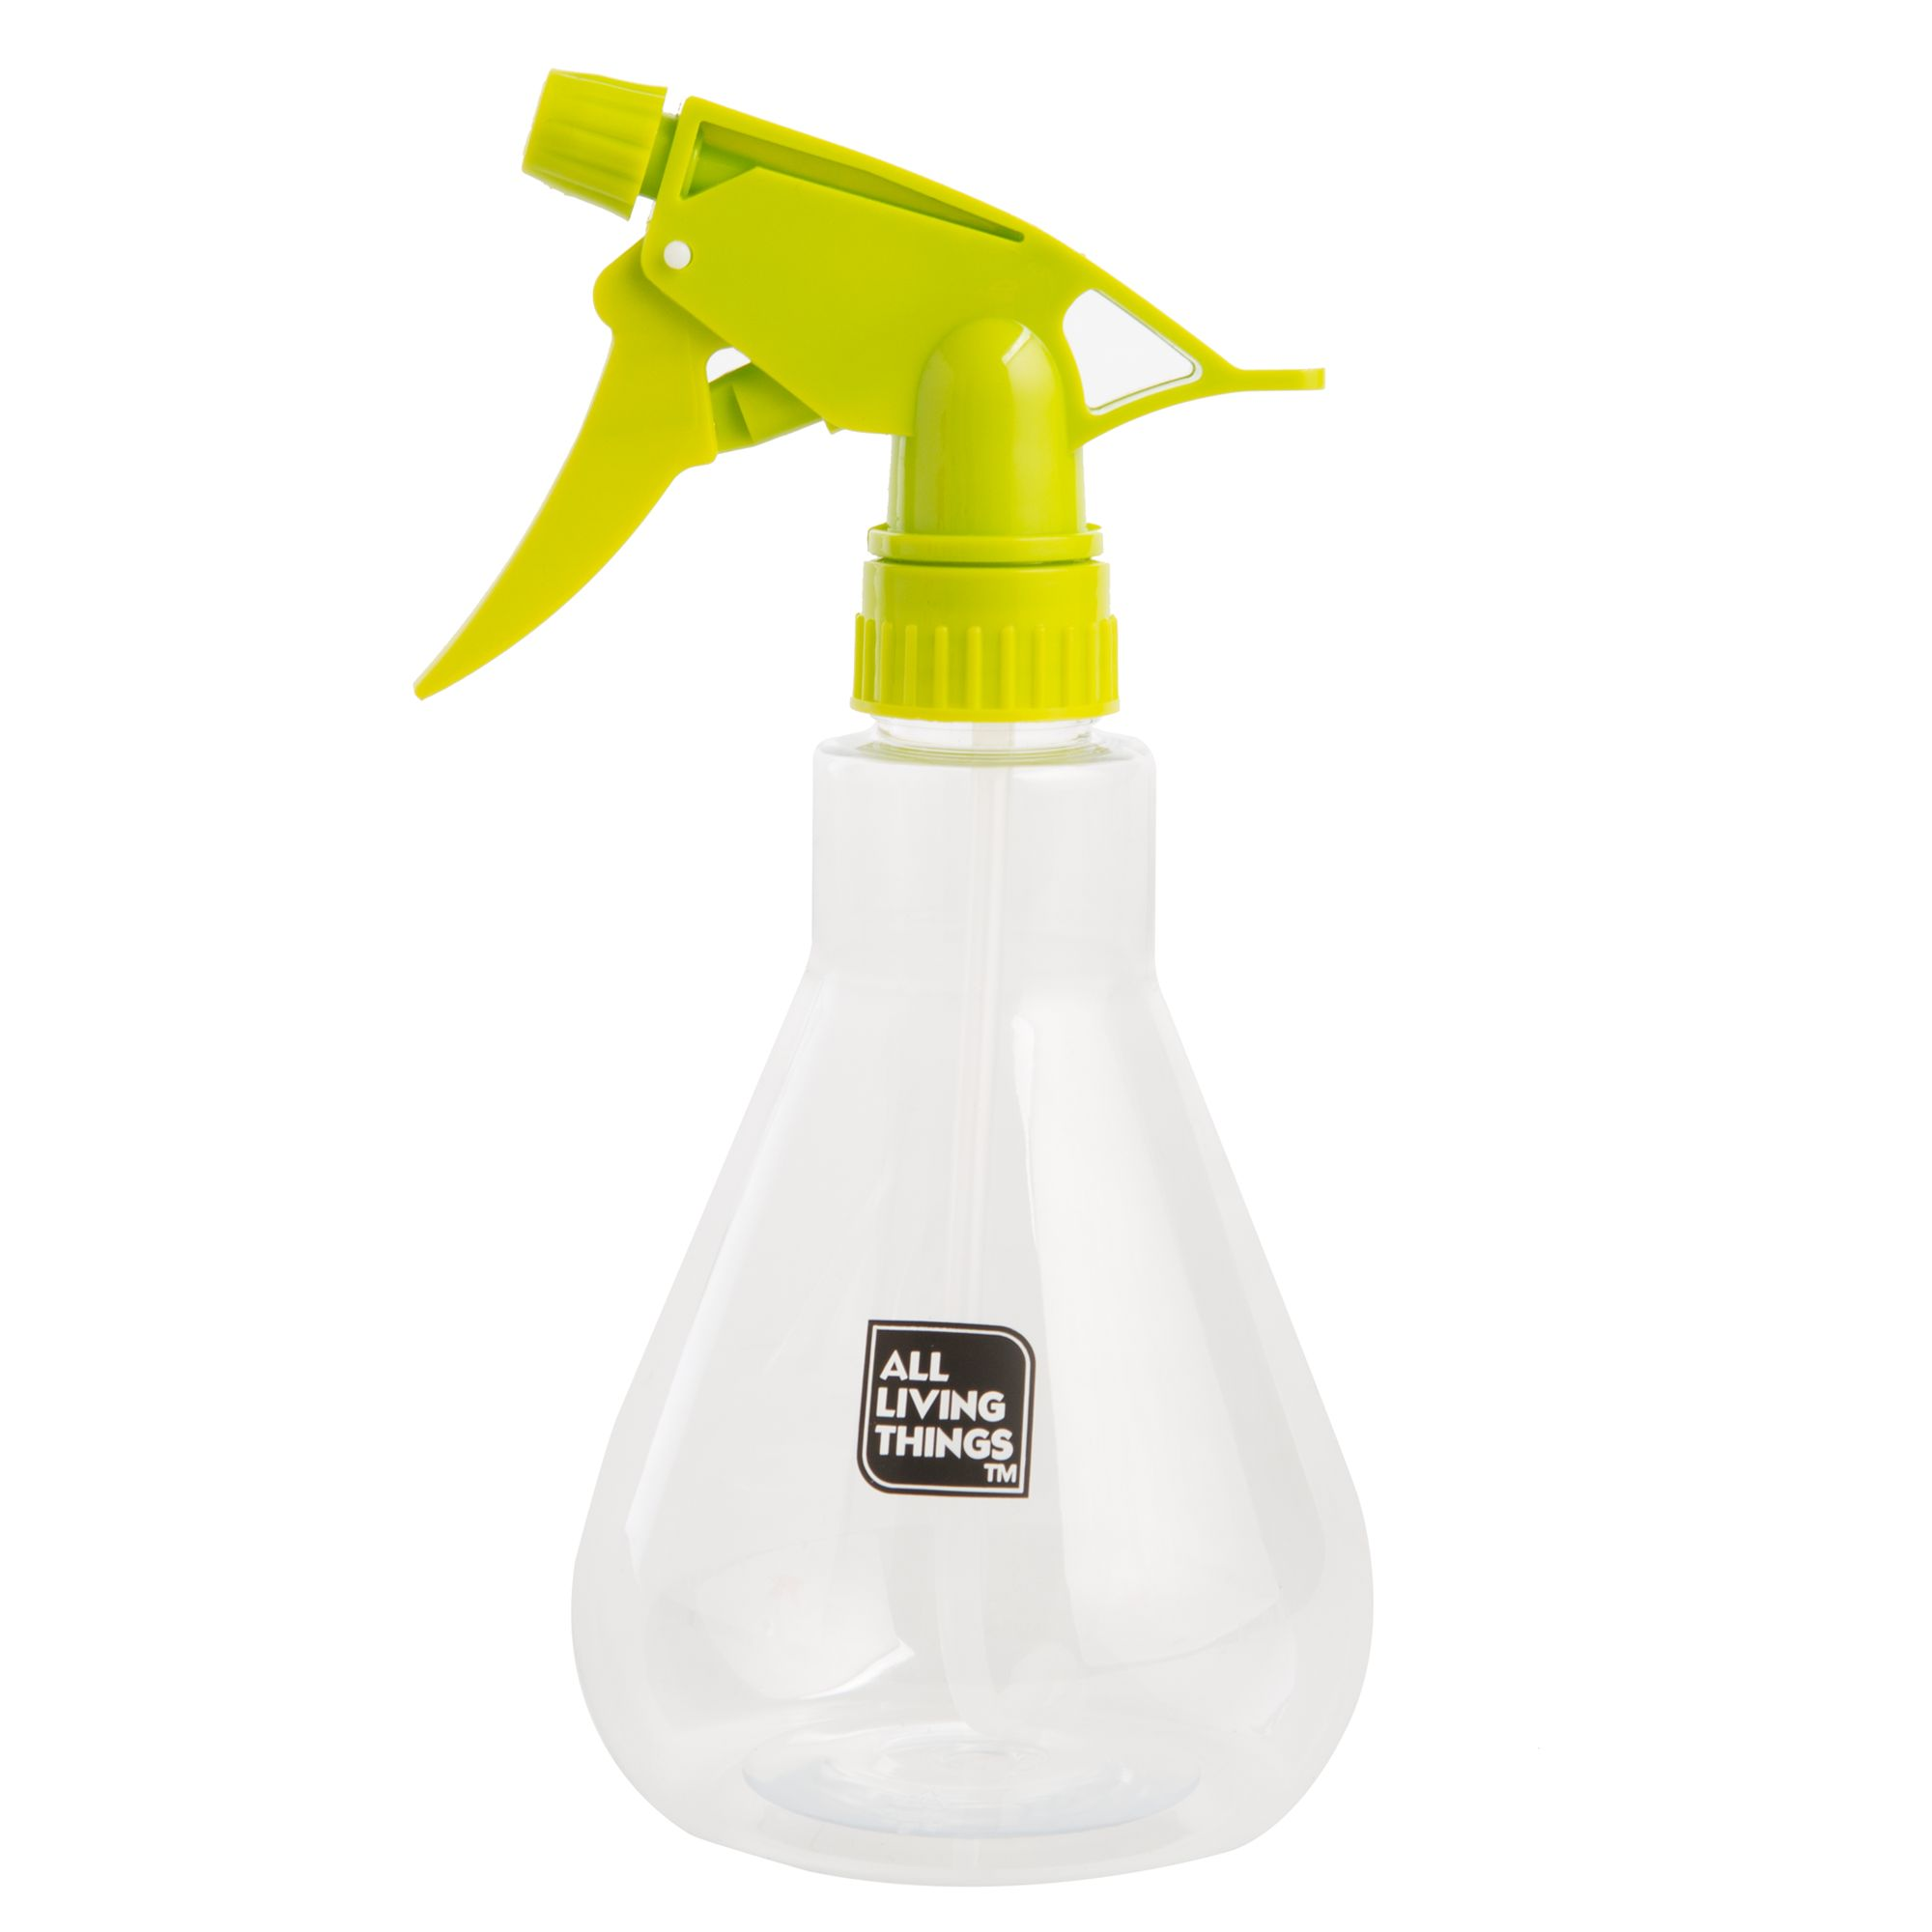 All Living Things Water Spray Bottle Size One Size